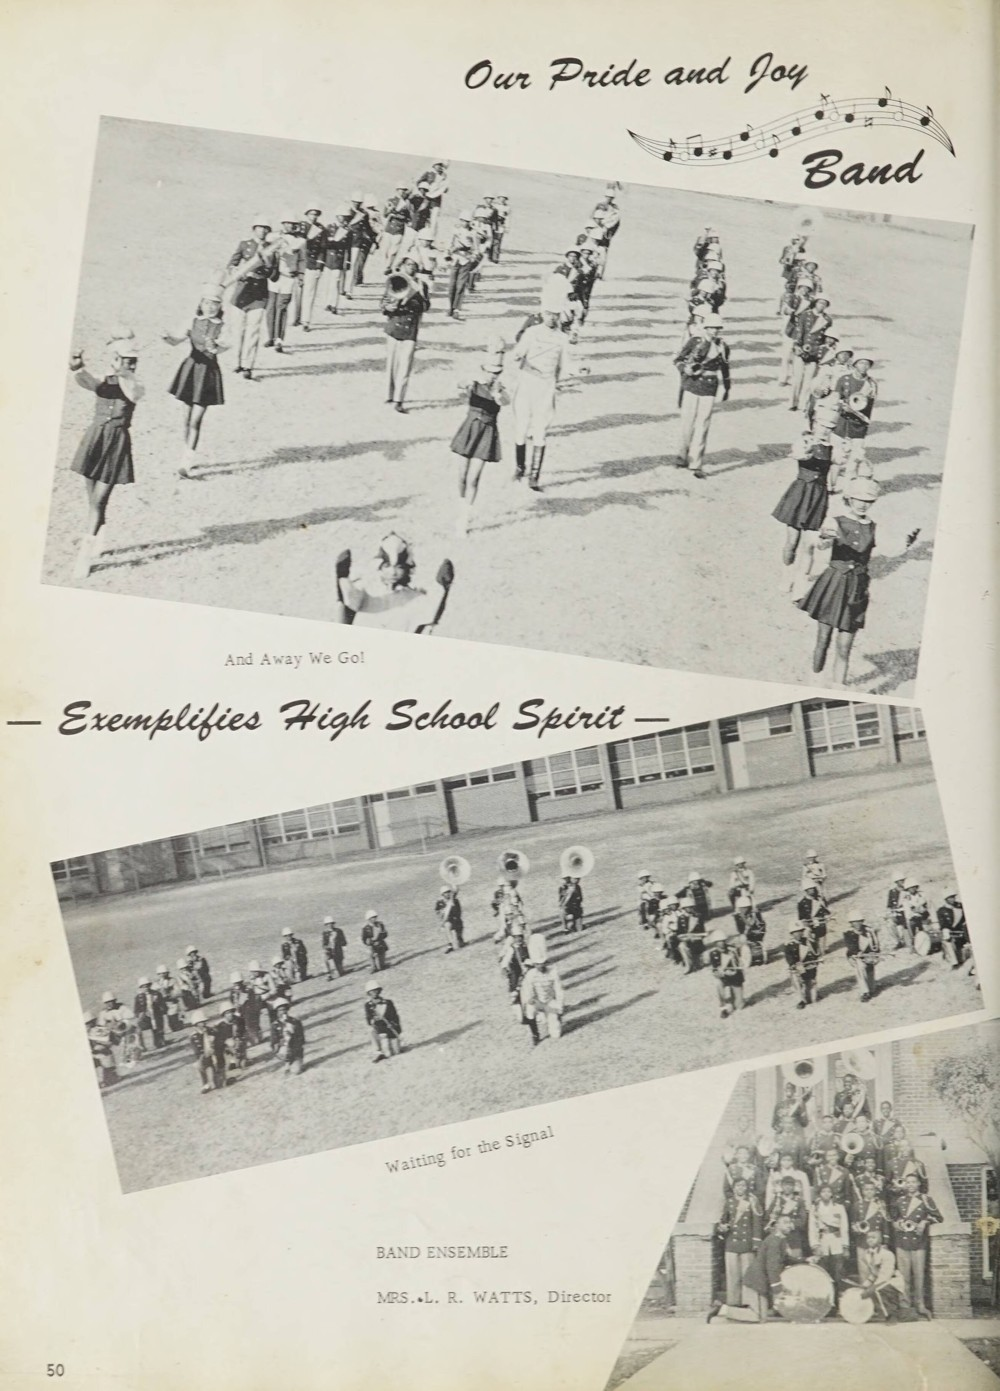 Three pictures of a marching band - two on the field, and one of the members posing on the steps of the school.